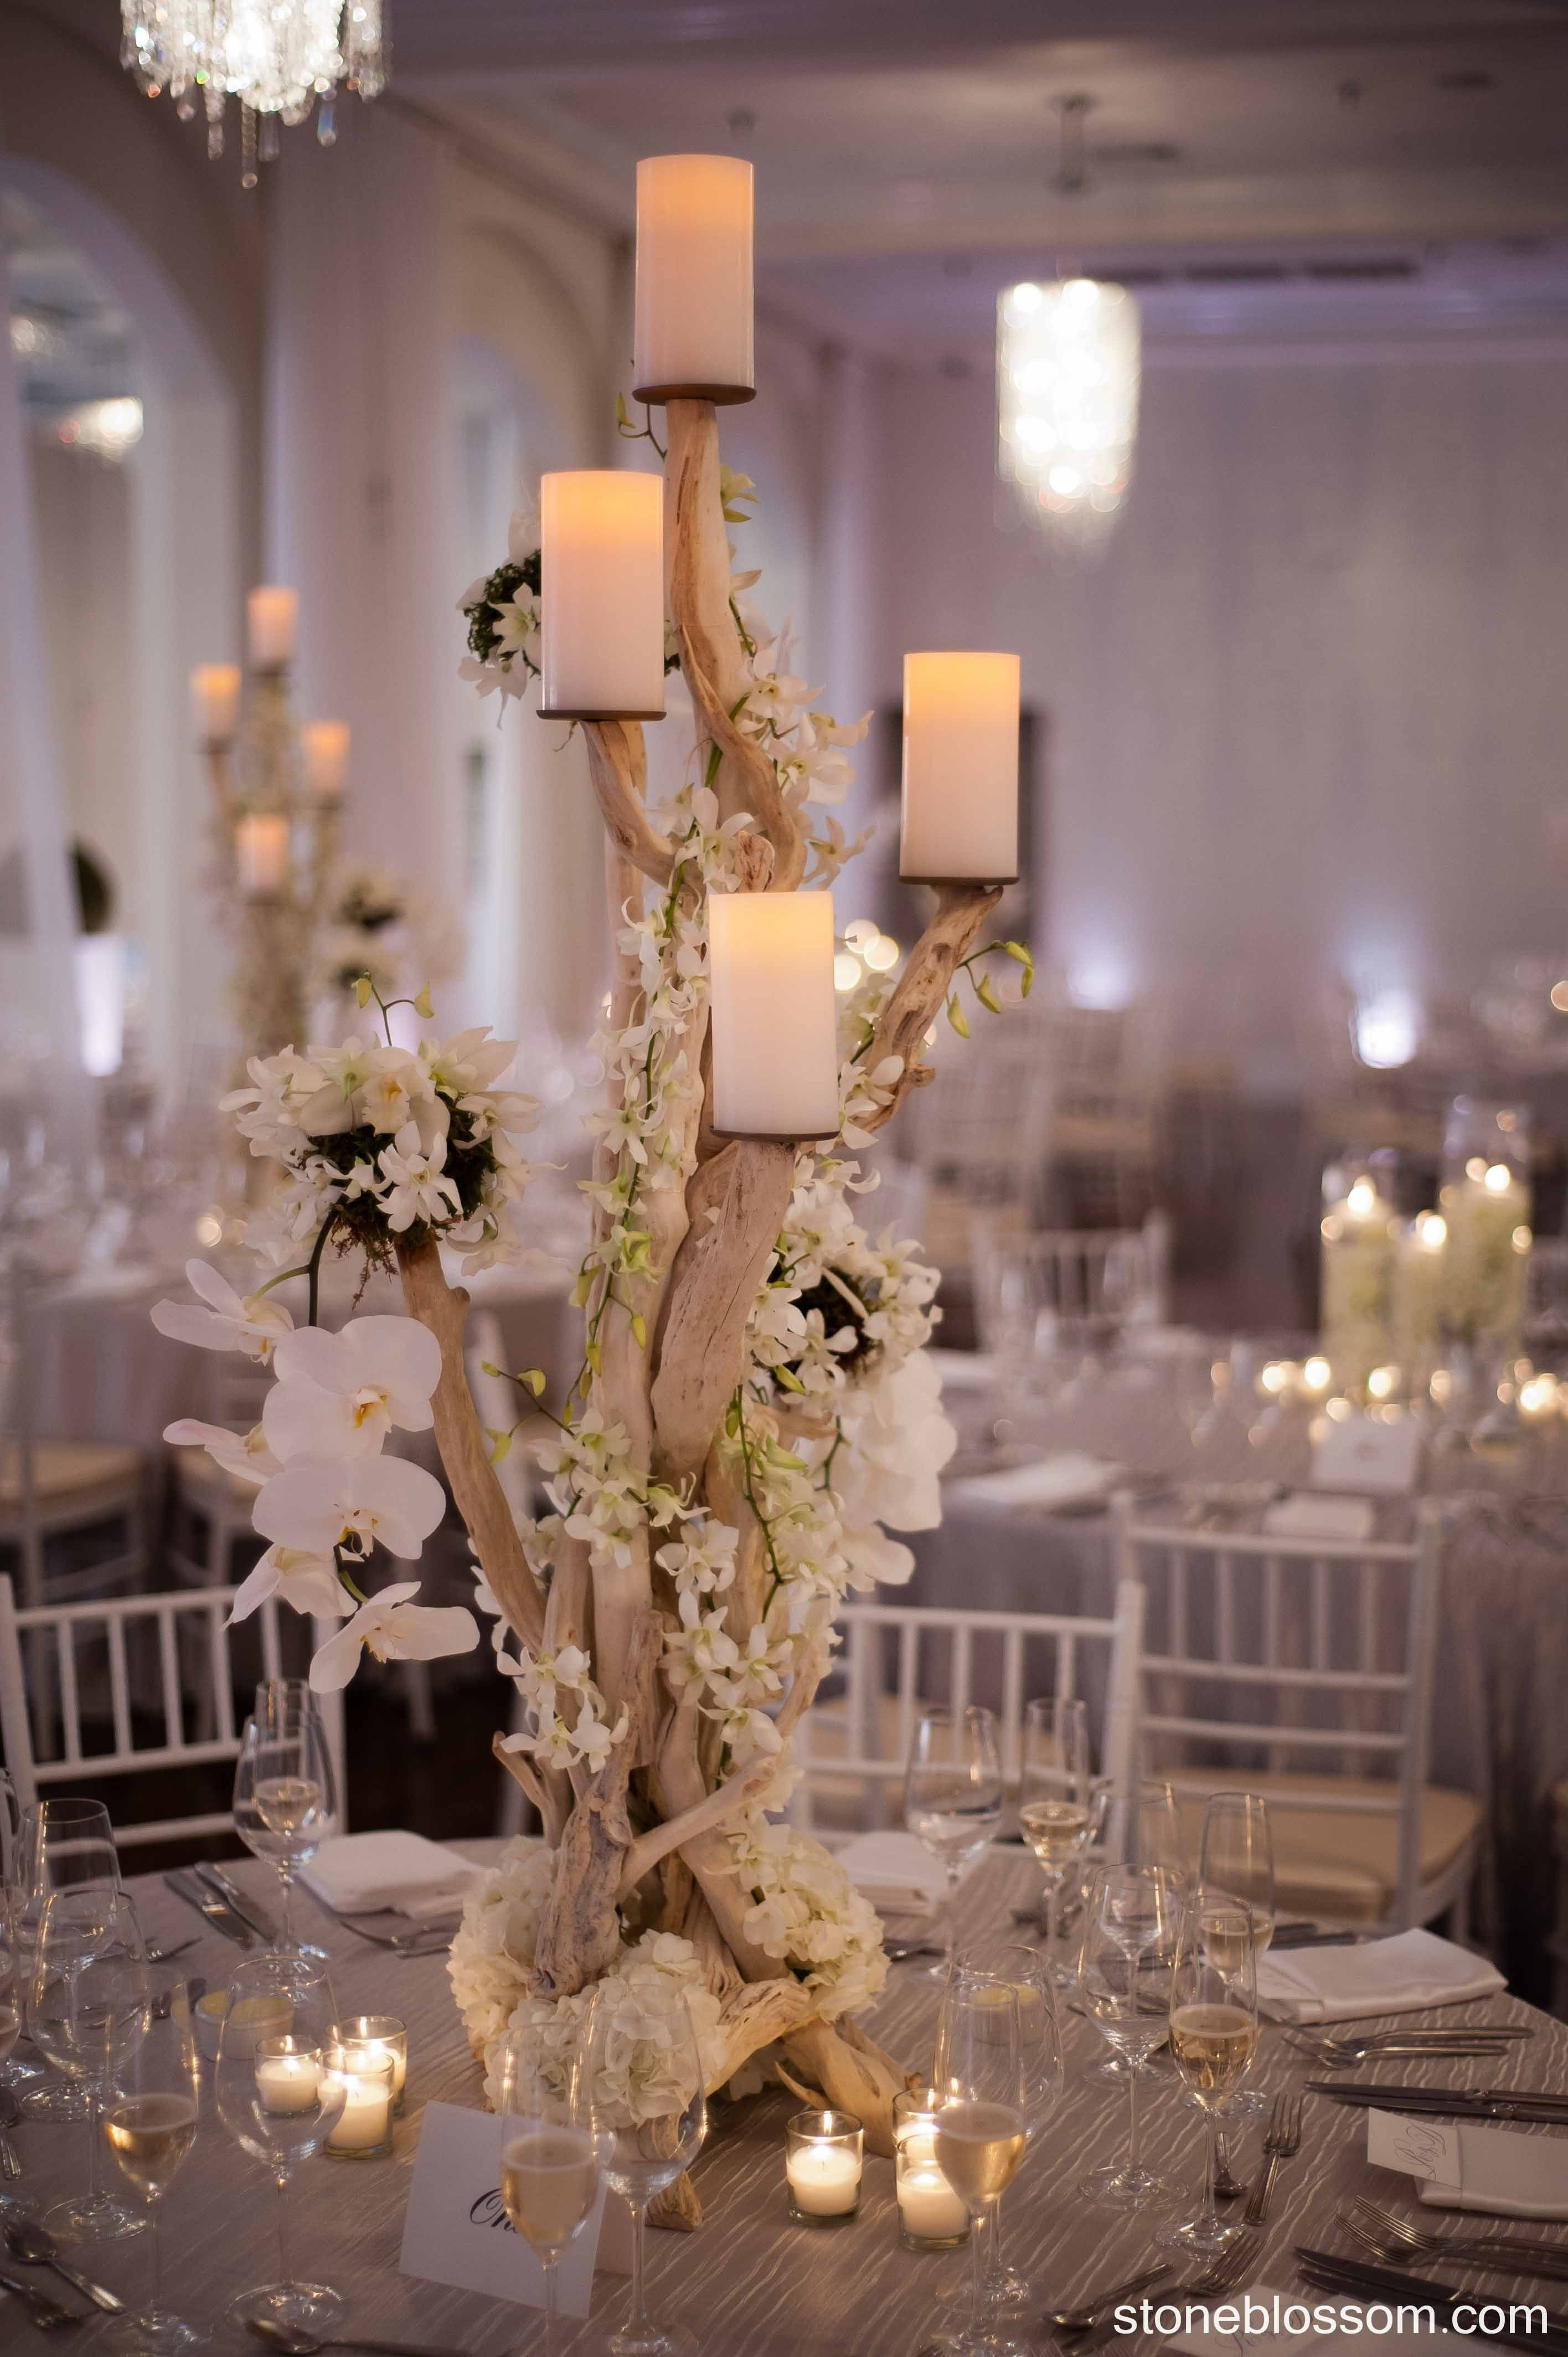 Tall Floor Vase Decoration Ideas Of Decorative Branches for Weddings Awesome Tall Vase Centerpiece Ideas In Decorative Branches for Weddings Luxury Floral Amp event Design by Stoneblossom Of Decorative Branches for Weddings